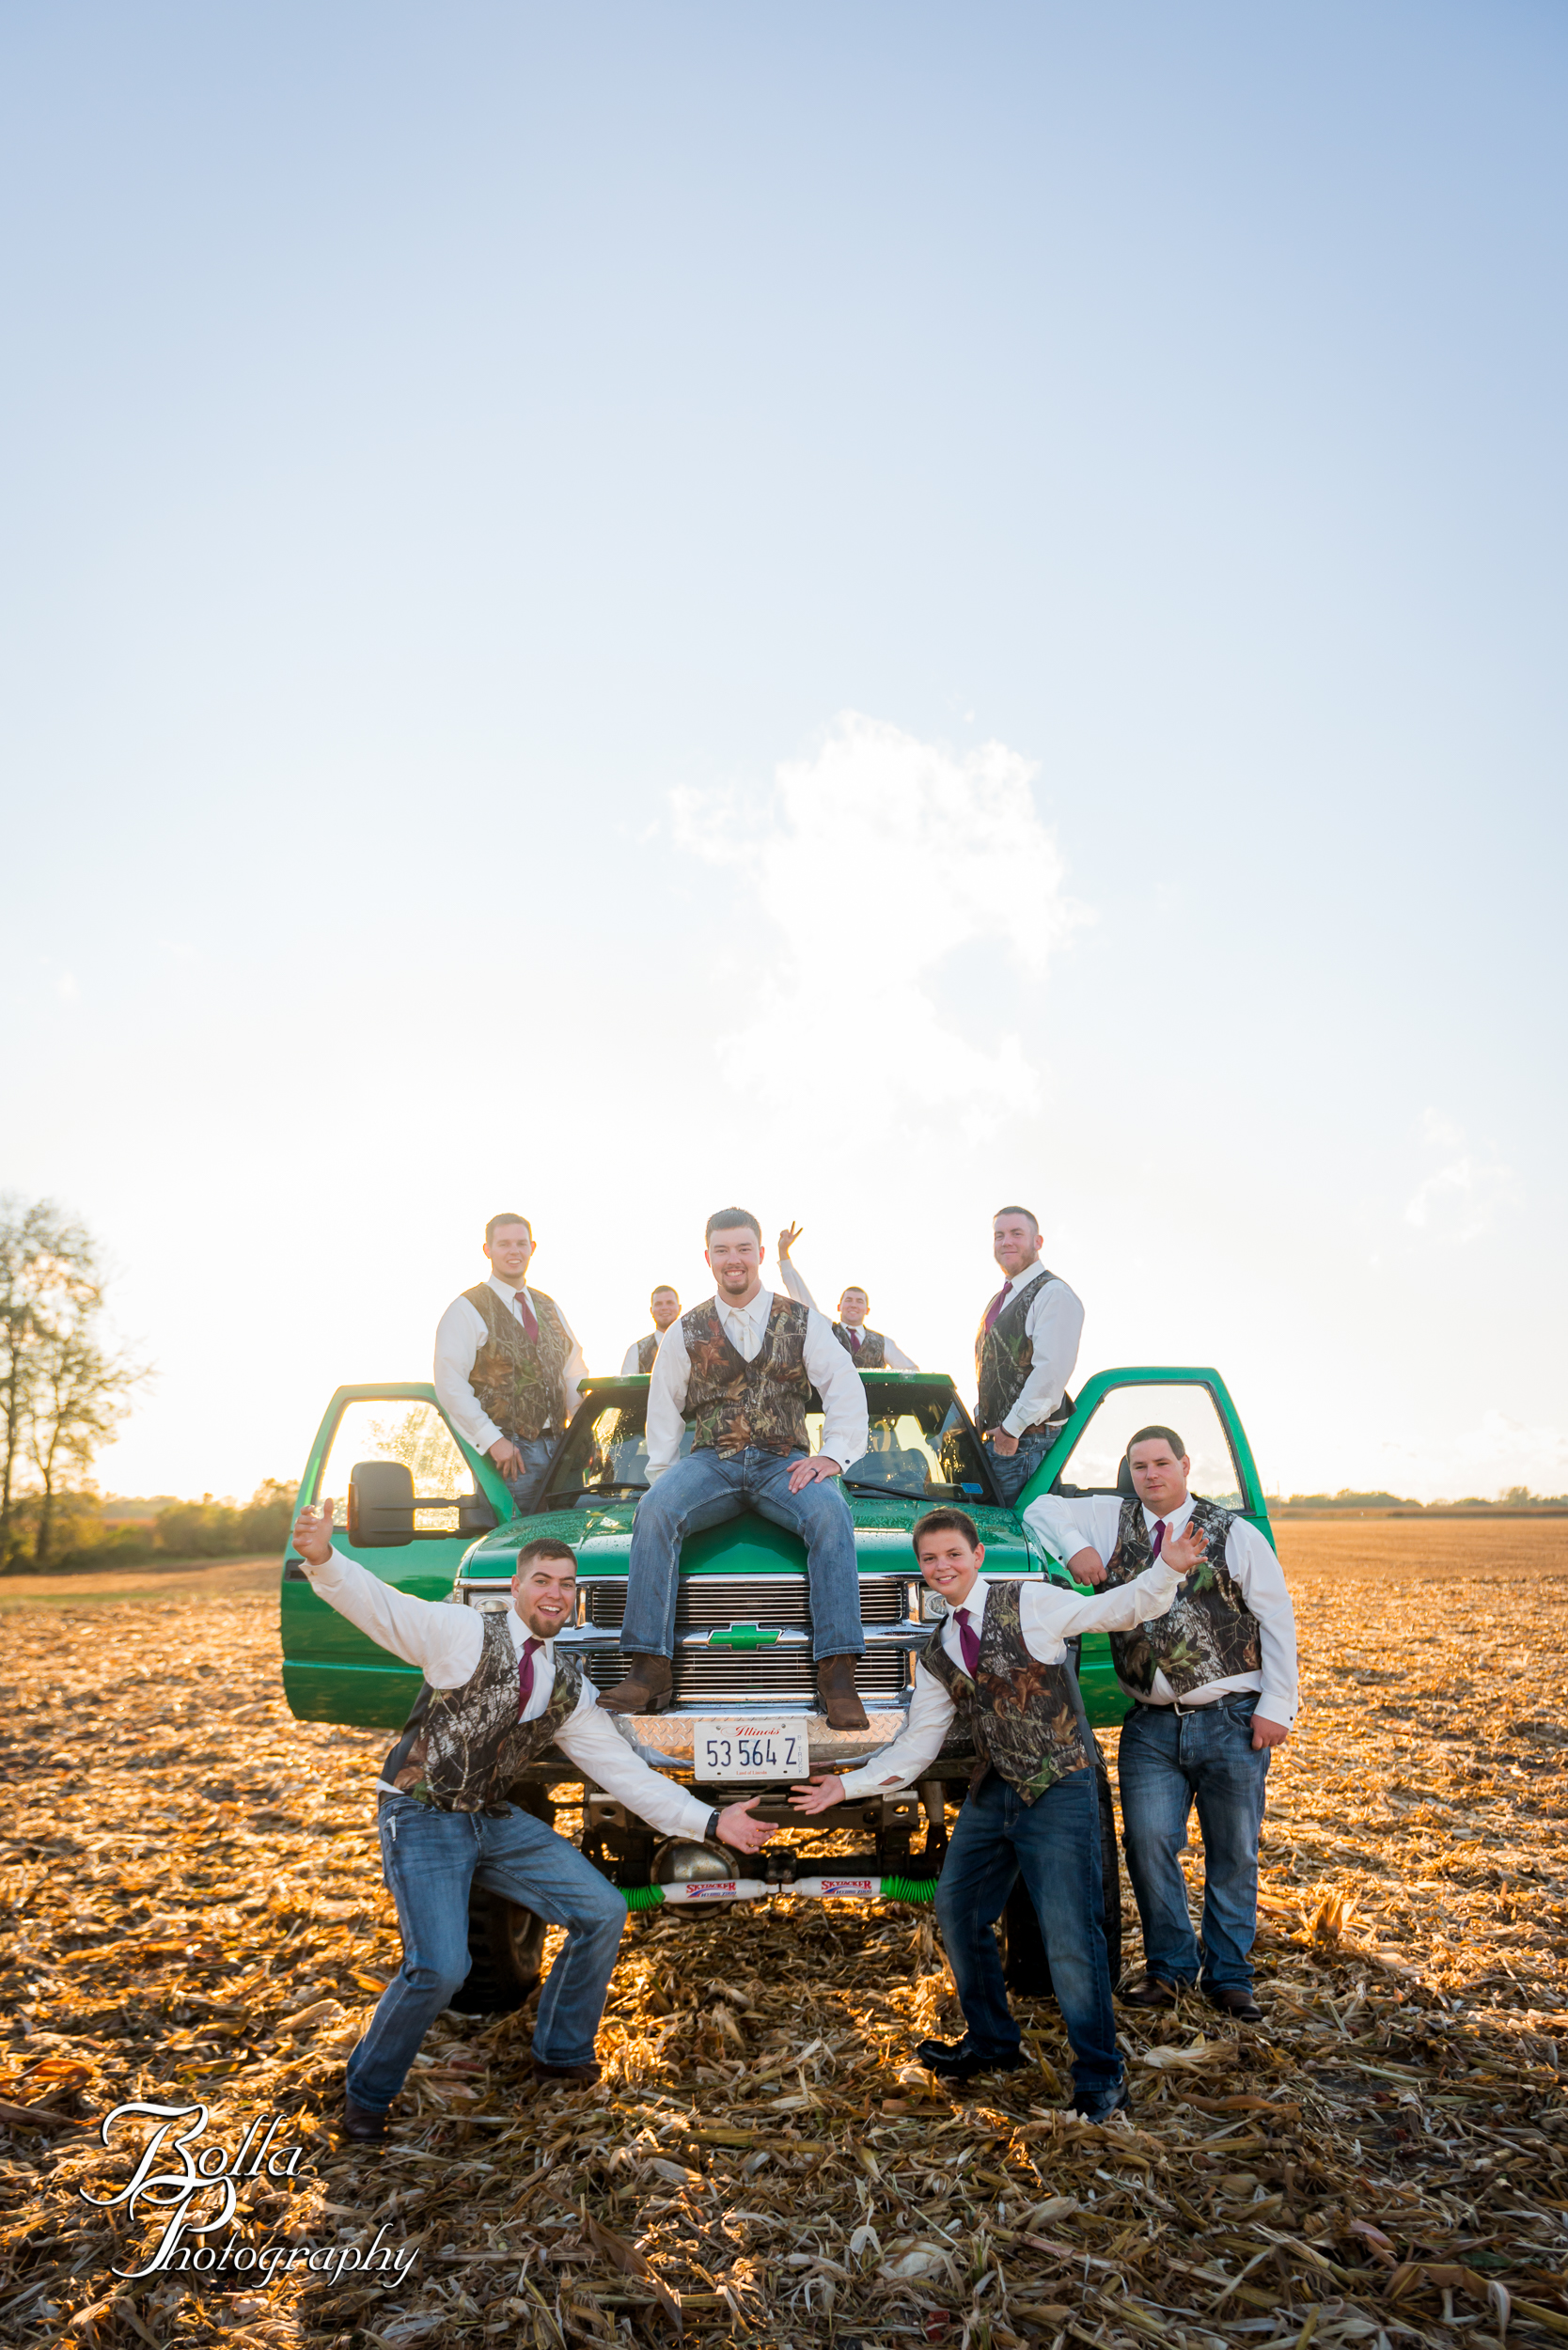 Bolla_photography_edwardsville_wedding_photographer_st_louis_weddings_Amber_Korsmeyer_Kyle_Gruner_Schwarz_Barn_blue_jeans_pickup_truck_autumn-0321.jpg